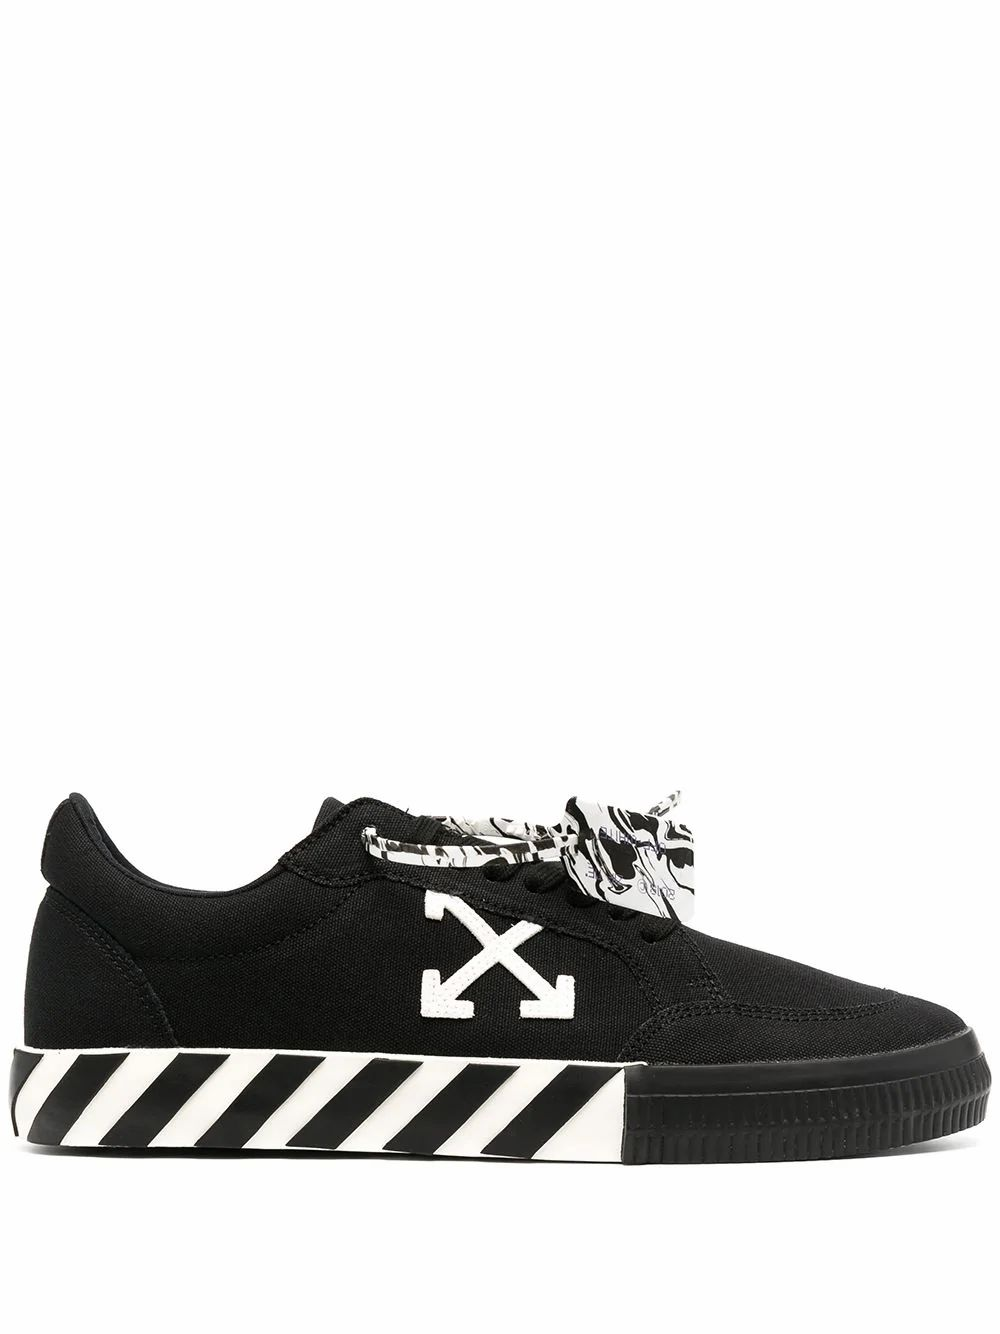 Off-White Leathers OFF-WHITE MEN'S BLACK LEATHER SNEAKERS